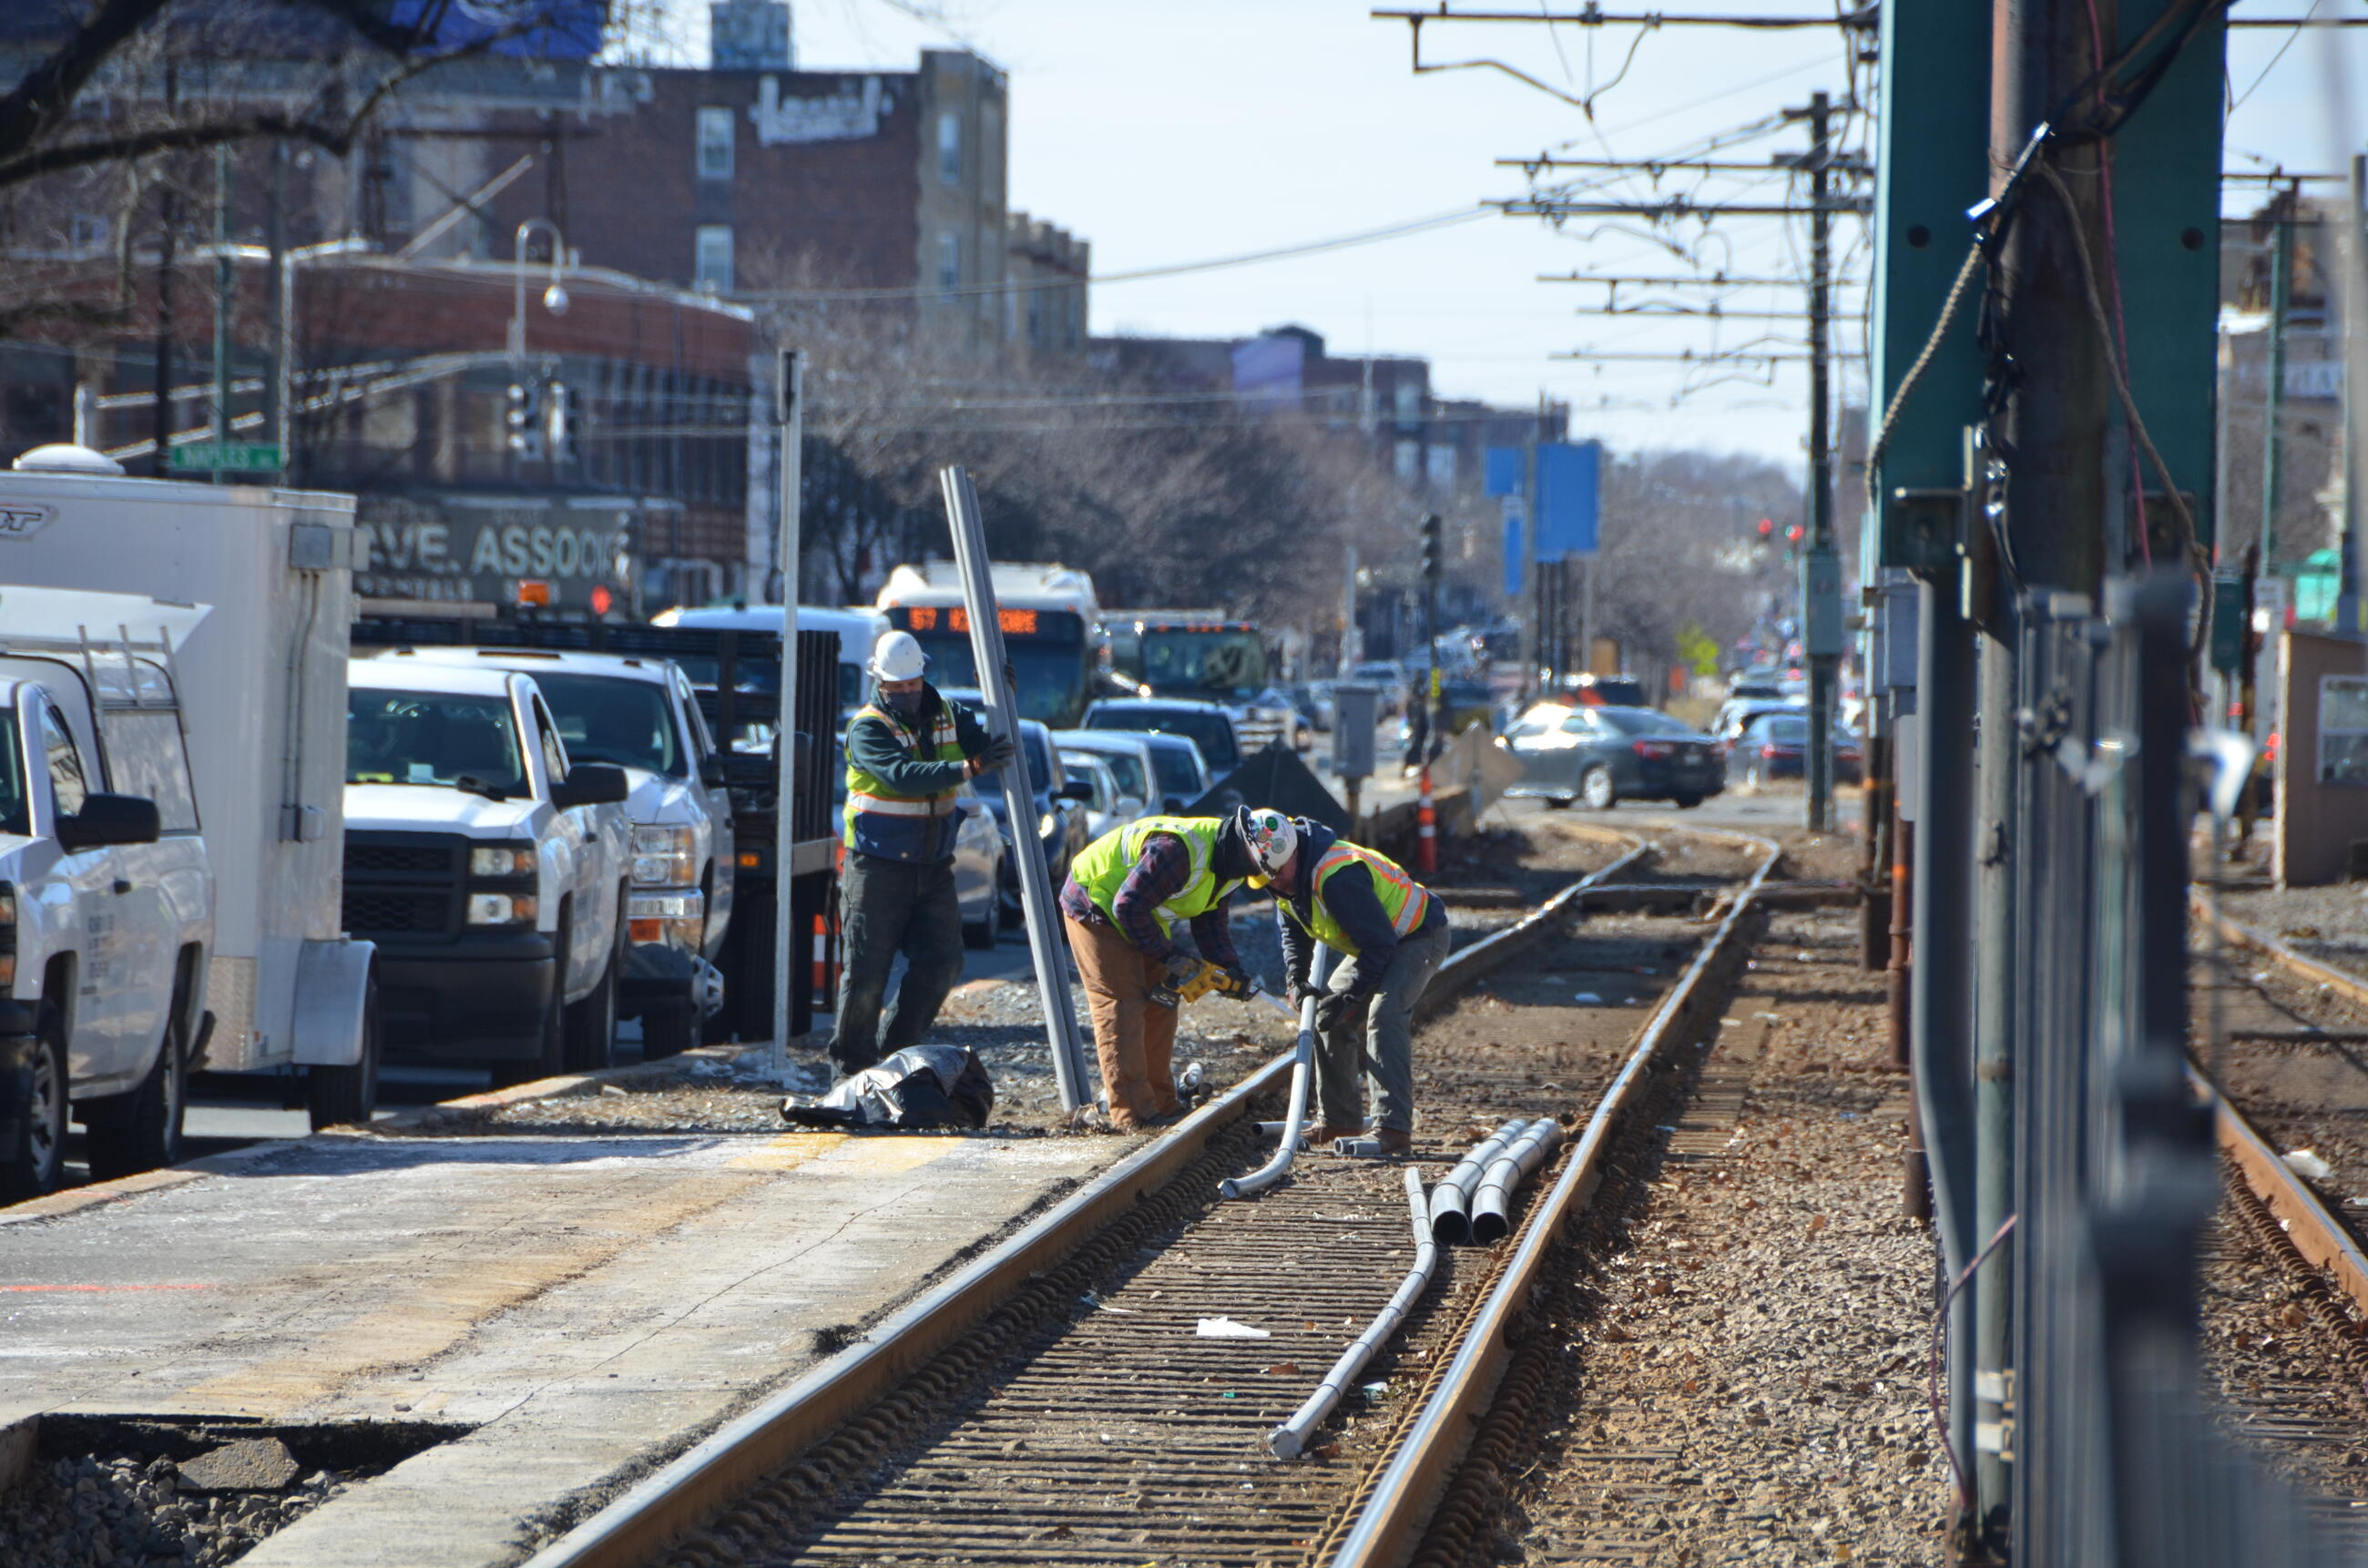 Crews prepare for conduit work as part of the B Branch Station Consolidation